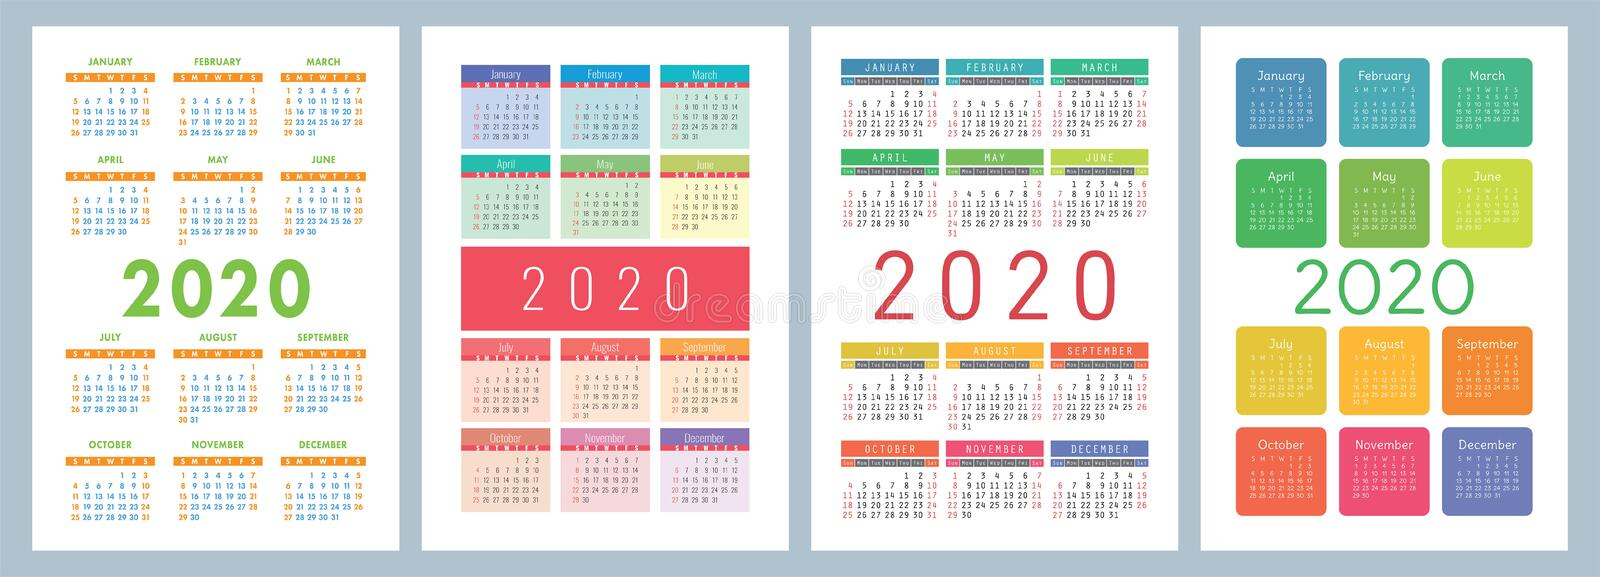 2020 calendar English calender design template colorful vector illustration